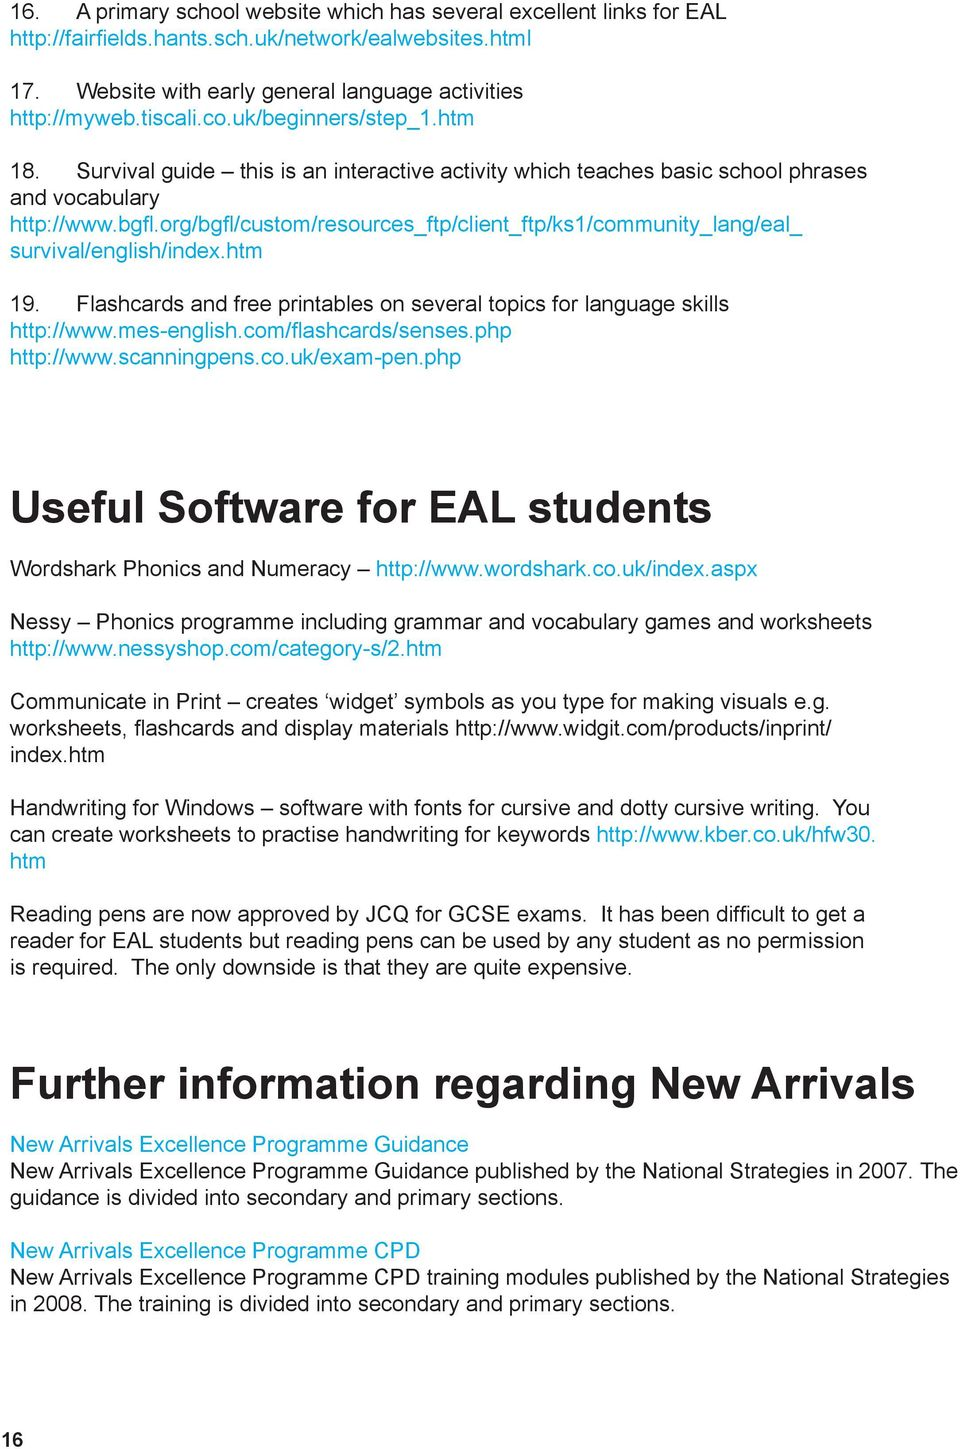 Bristol Secondary Schools EAL Induction Pack. Support materials for ...